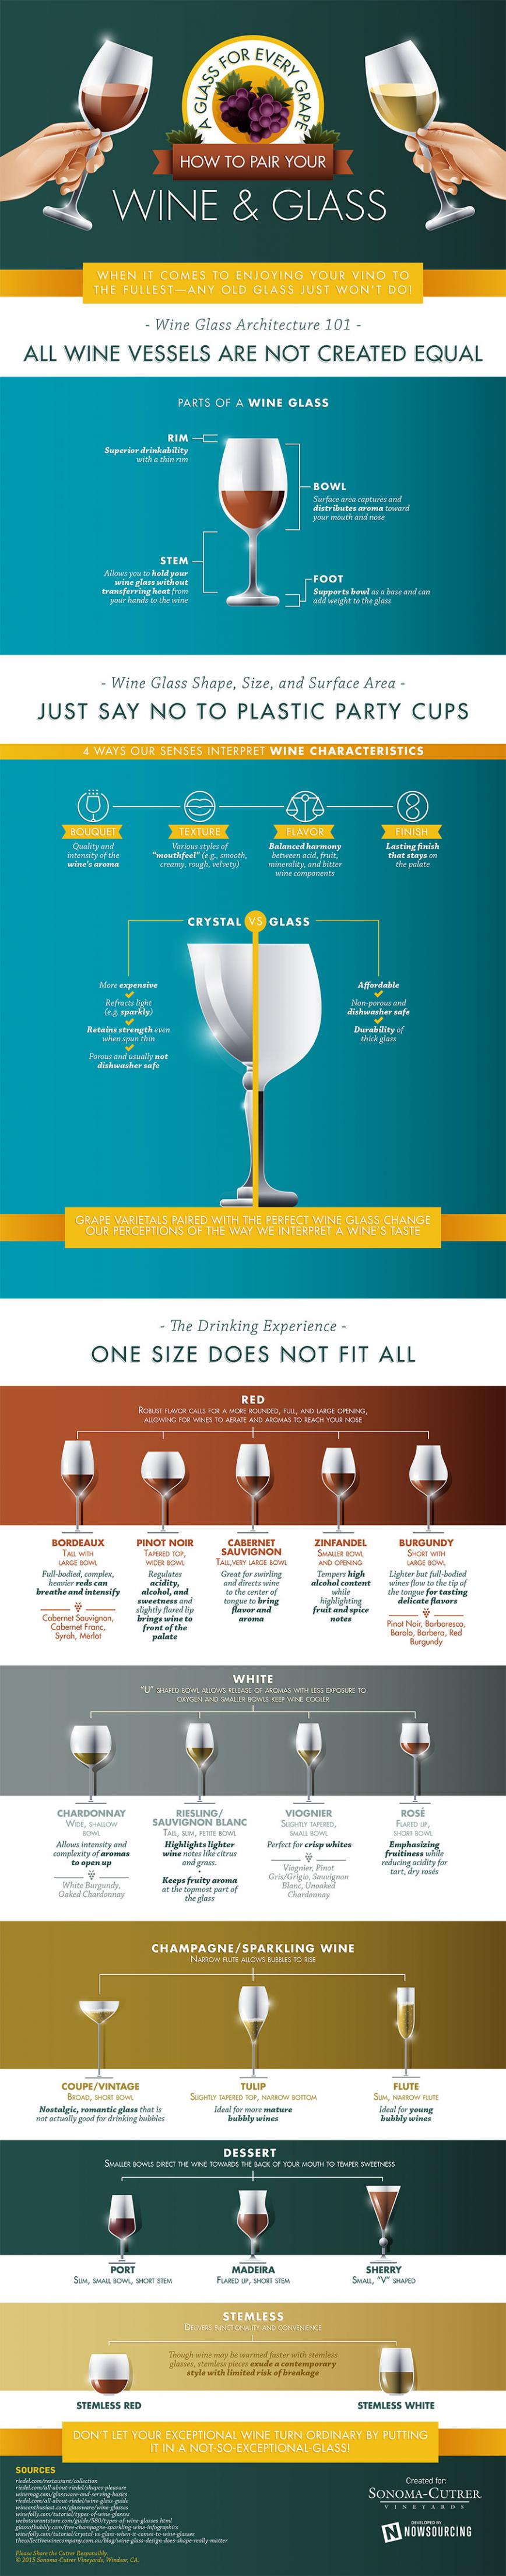 How To Pair Your Wine & Glass